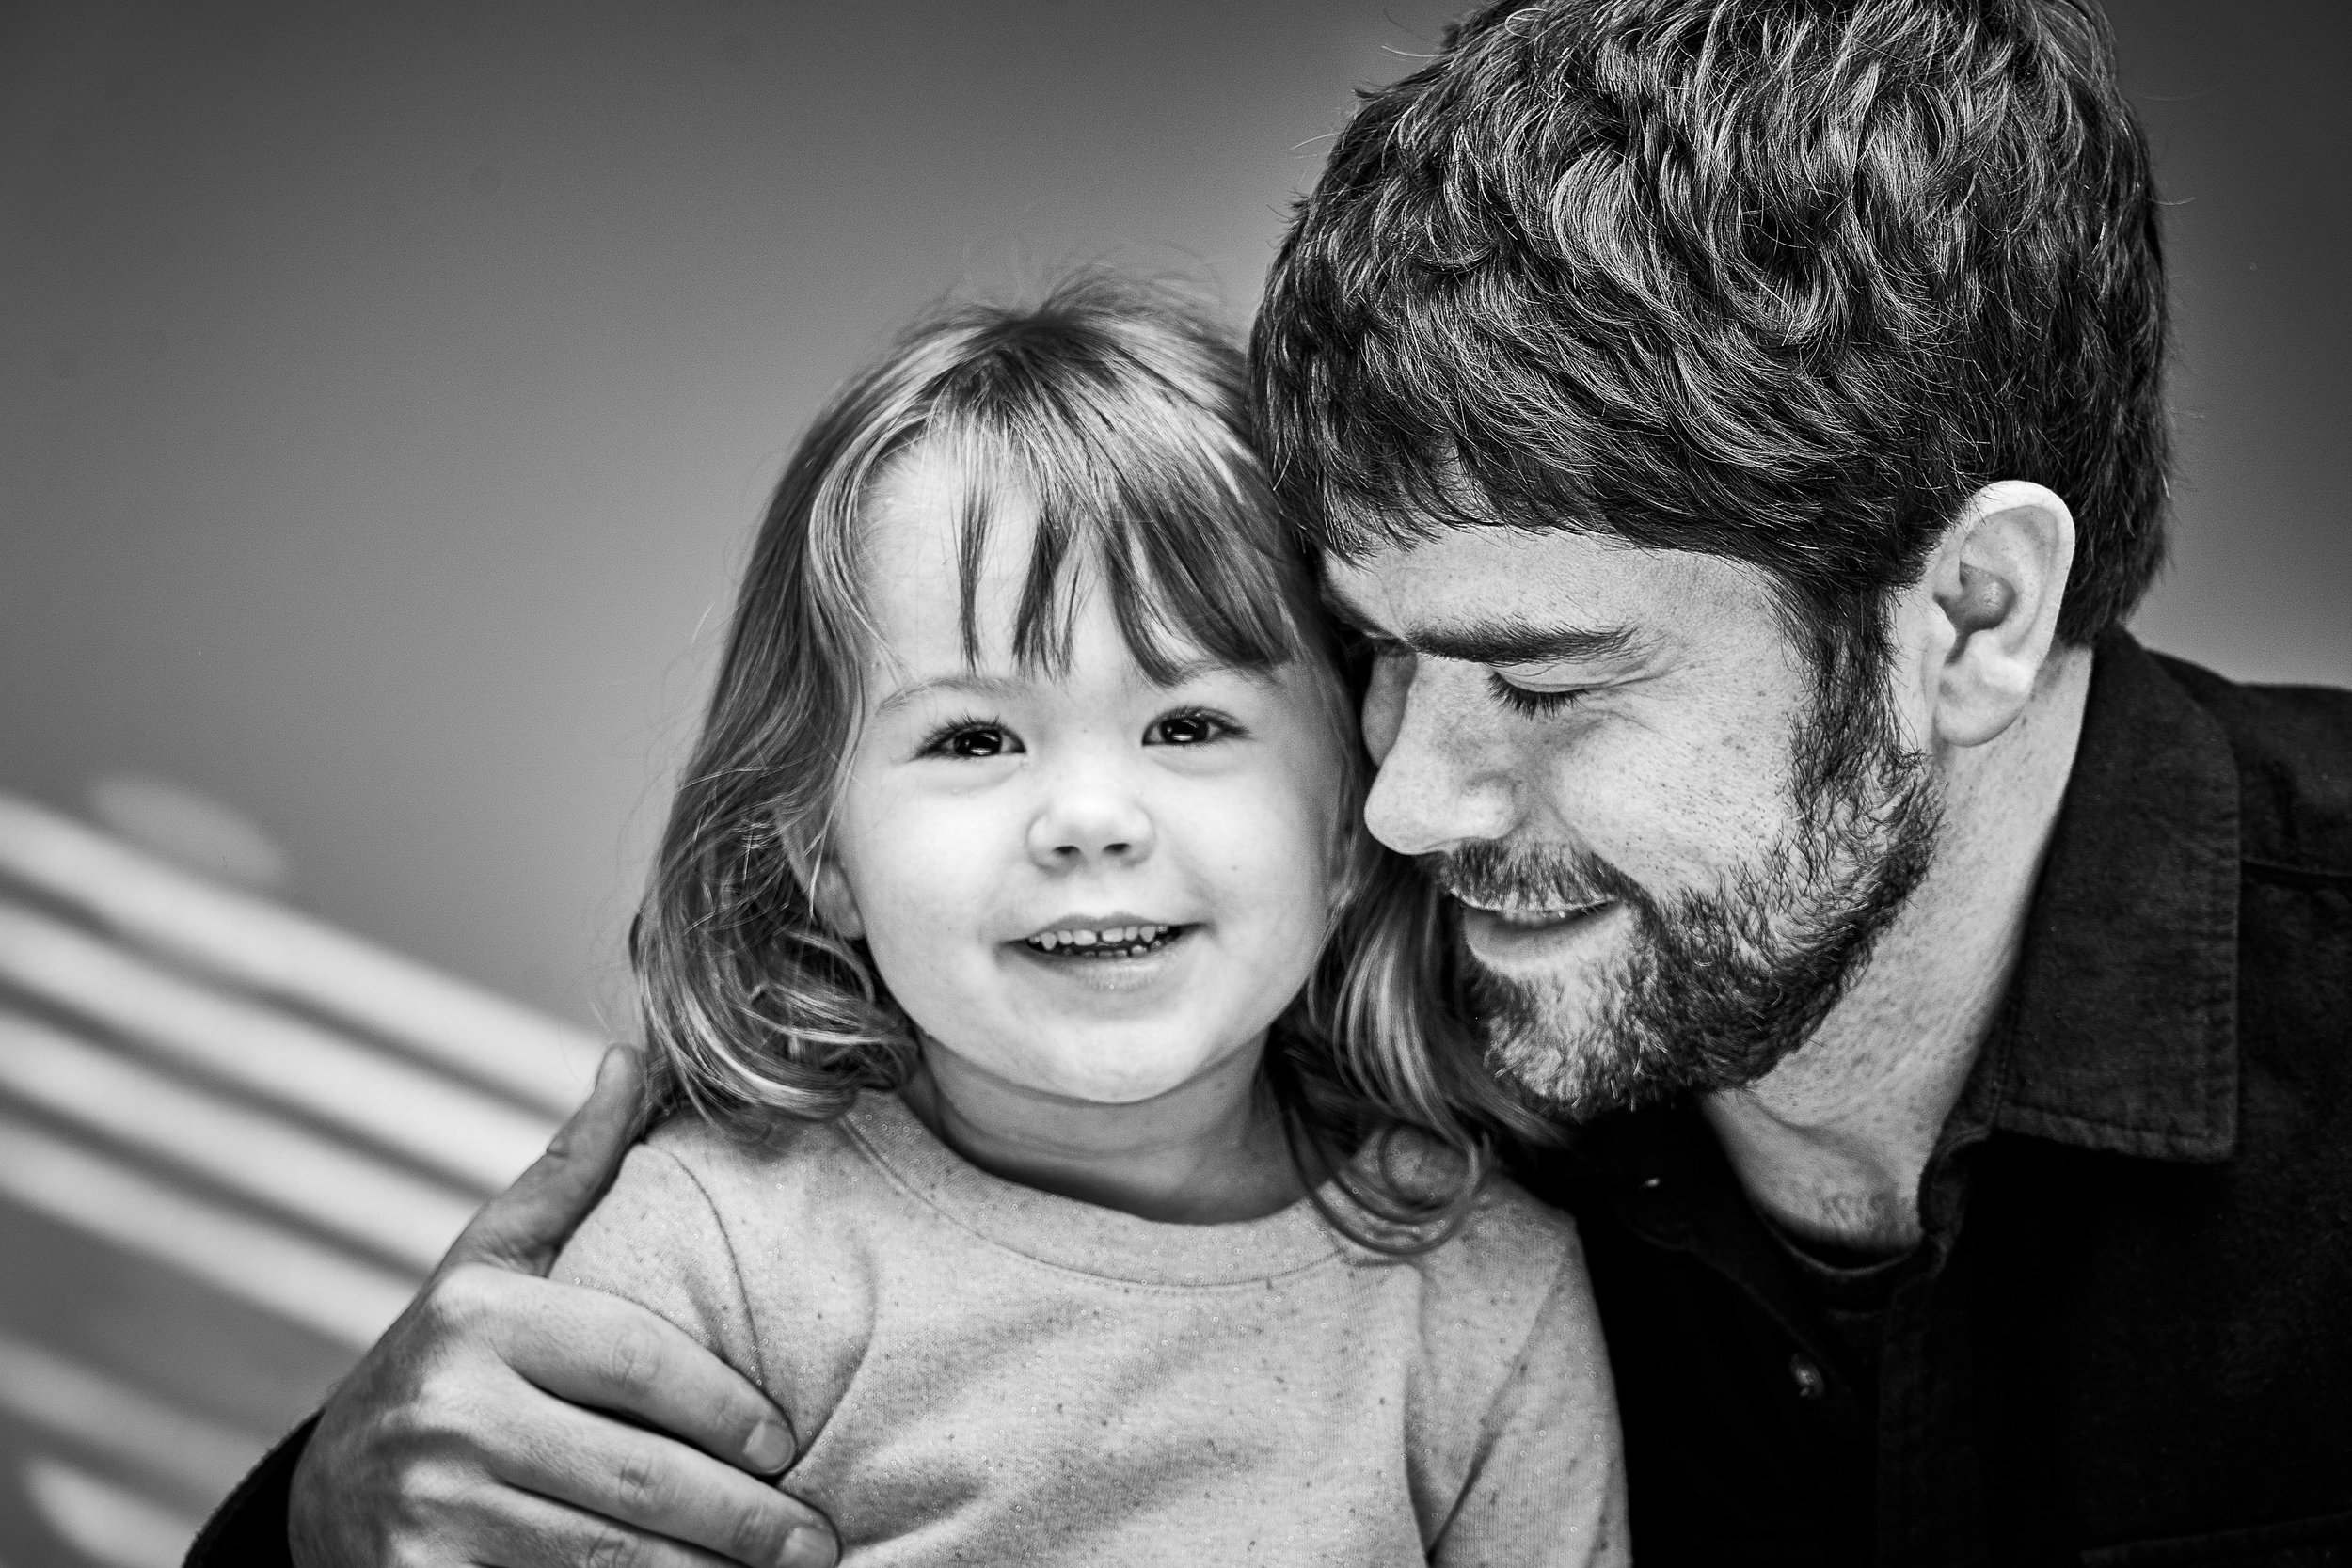 2018-12-15-Puls Familly4622-bw-proofs-retouched web.jpg